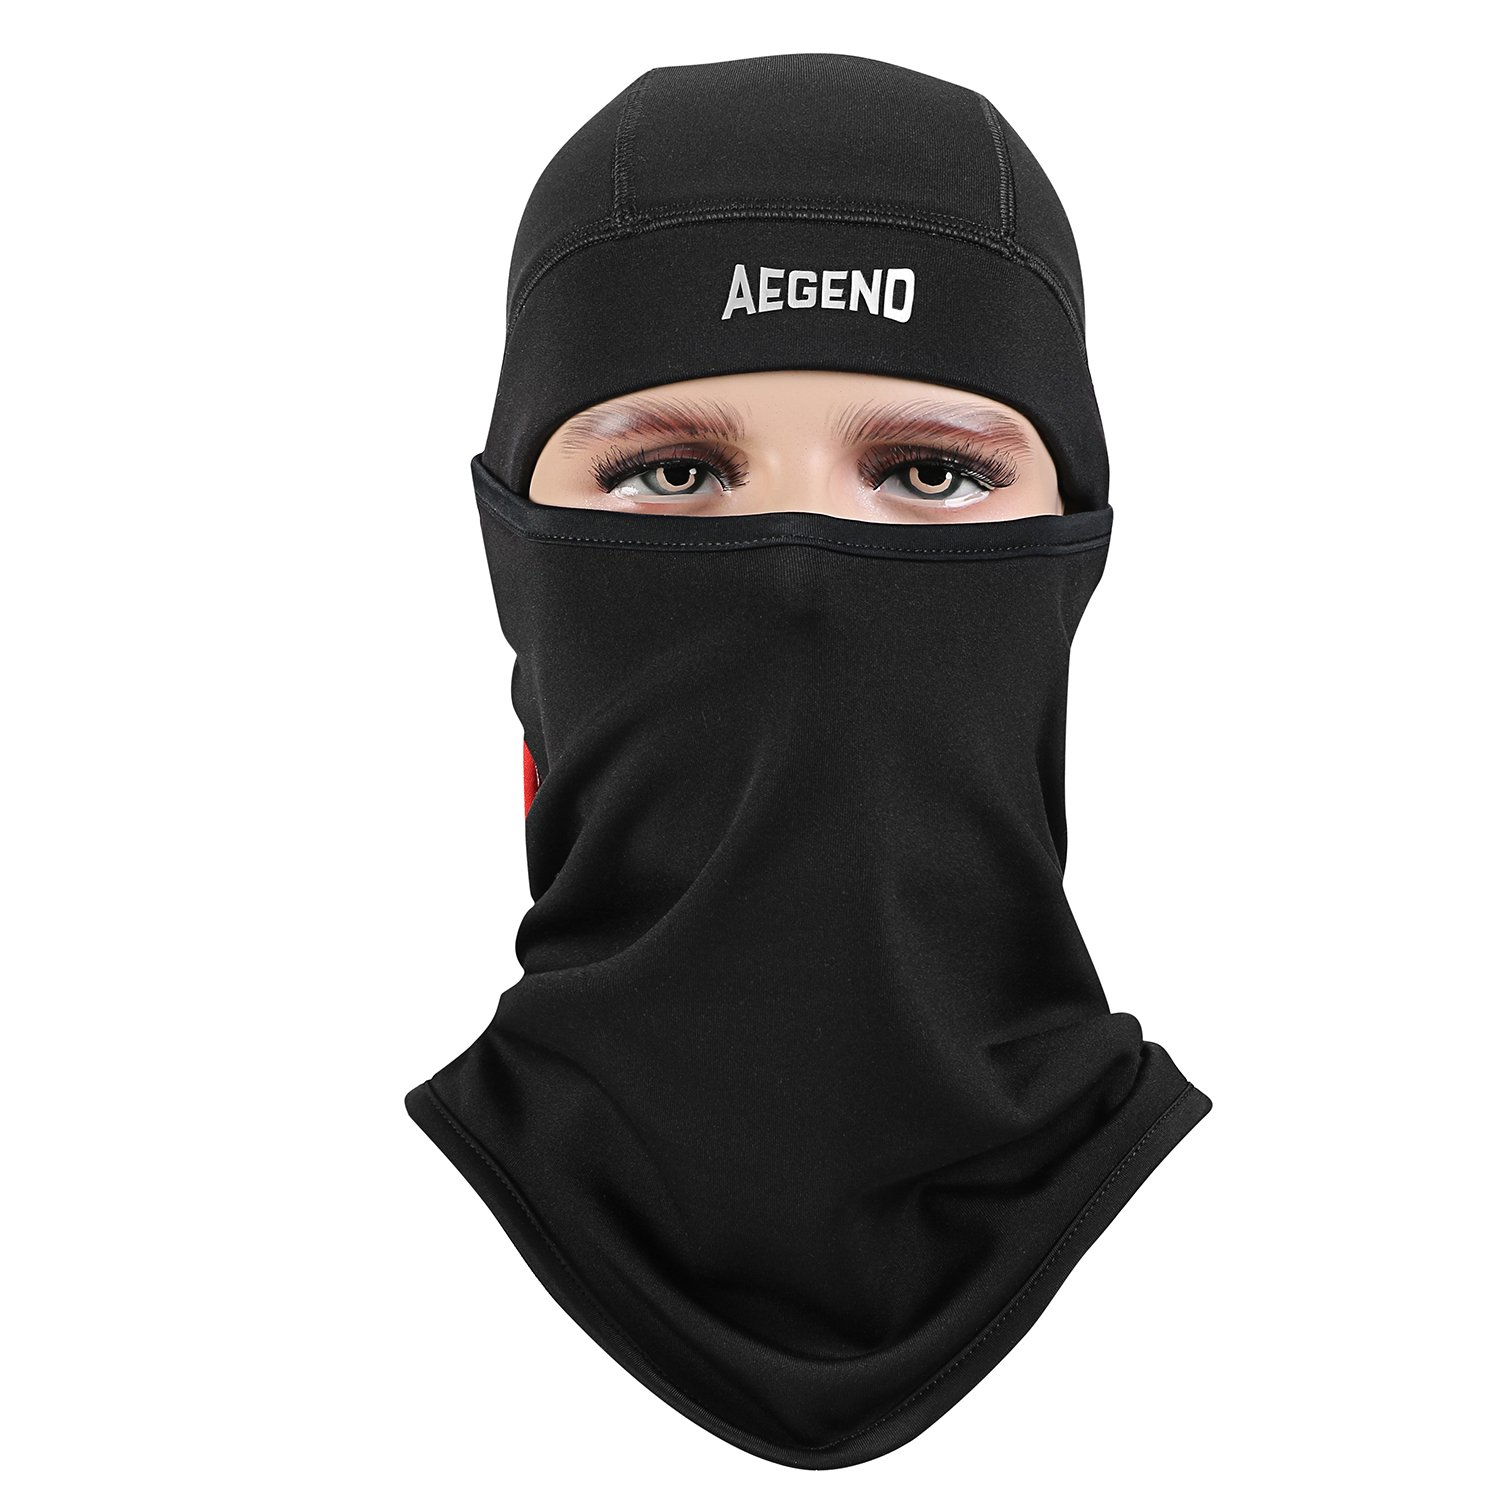 Pens, Pencils & Writing Supplies Yoga Fast Deliver Full Face Mask Warm Helmet Liner Ski Running Cycling Snowboard Bike Bicycle Riding Face Shield Hat